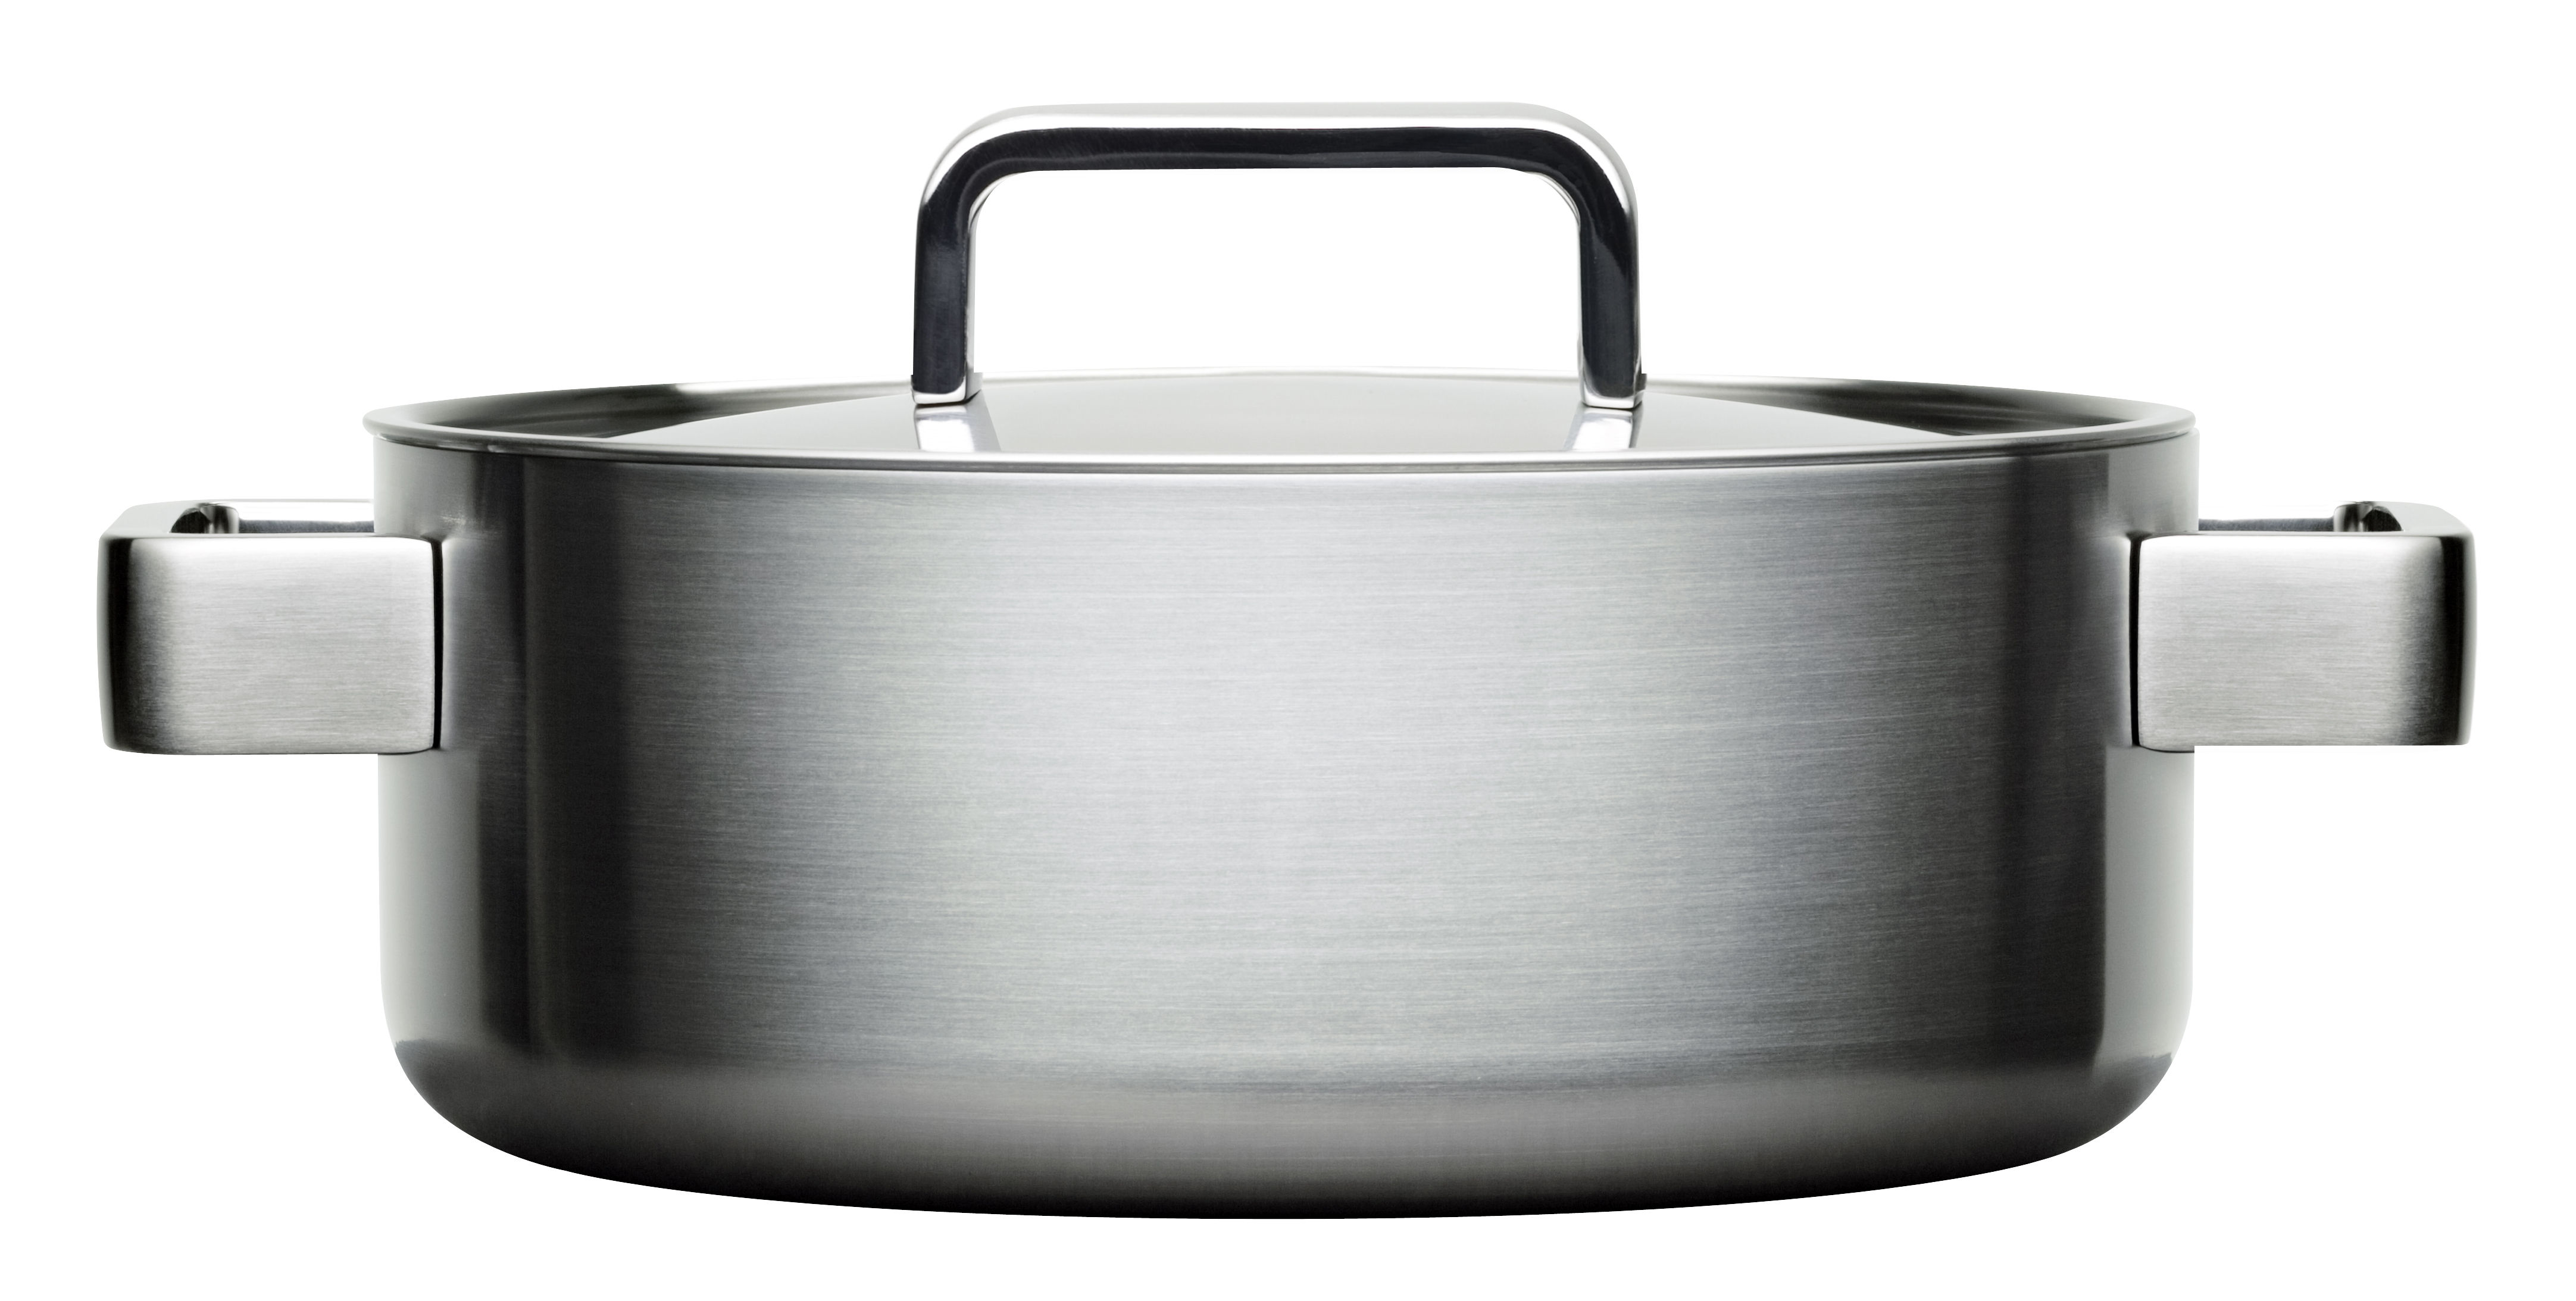 Kitchenware - Pots & Pans - Tools Stew pot - 3L / With lid by Iittala - Steel - Stainless steel